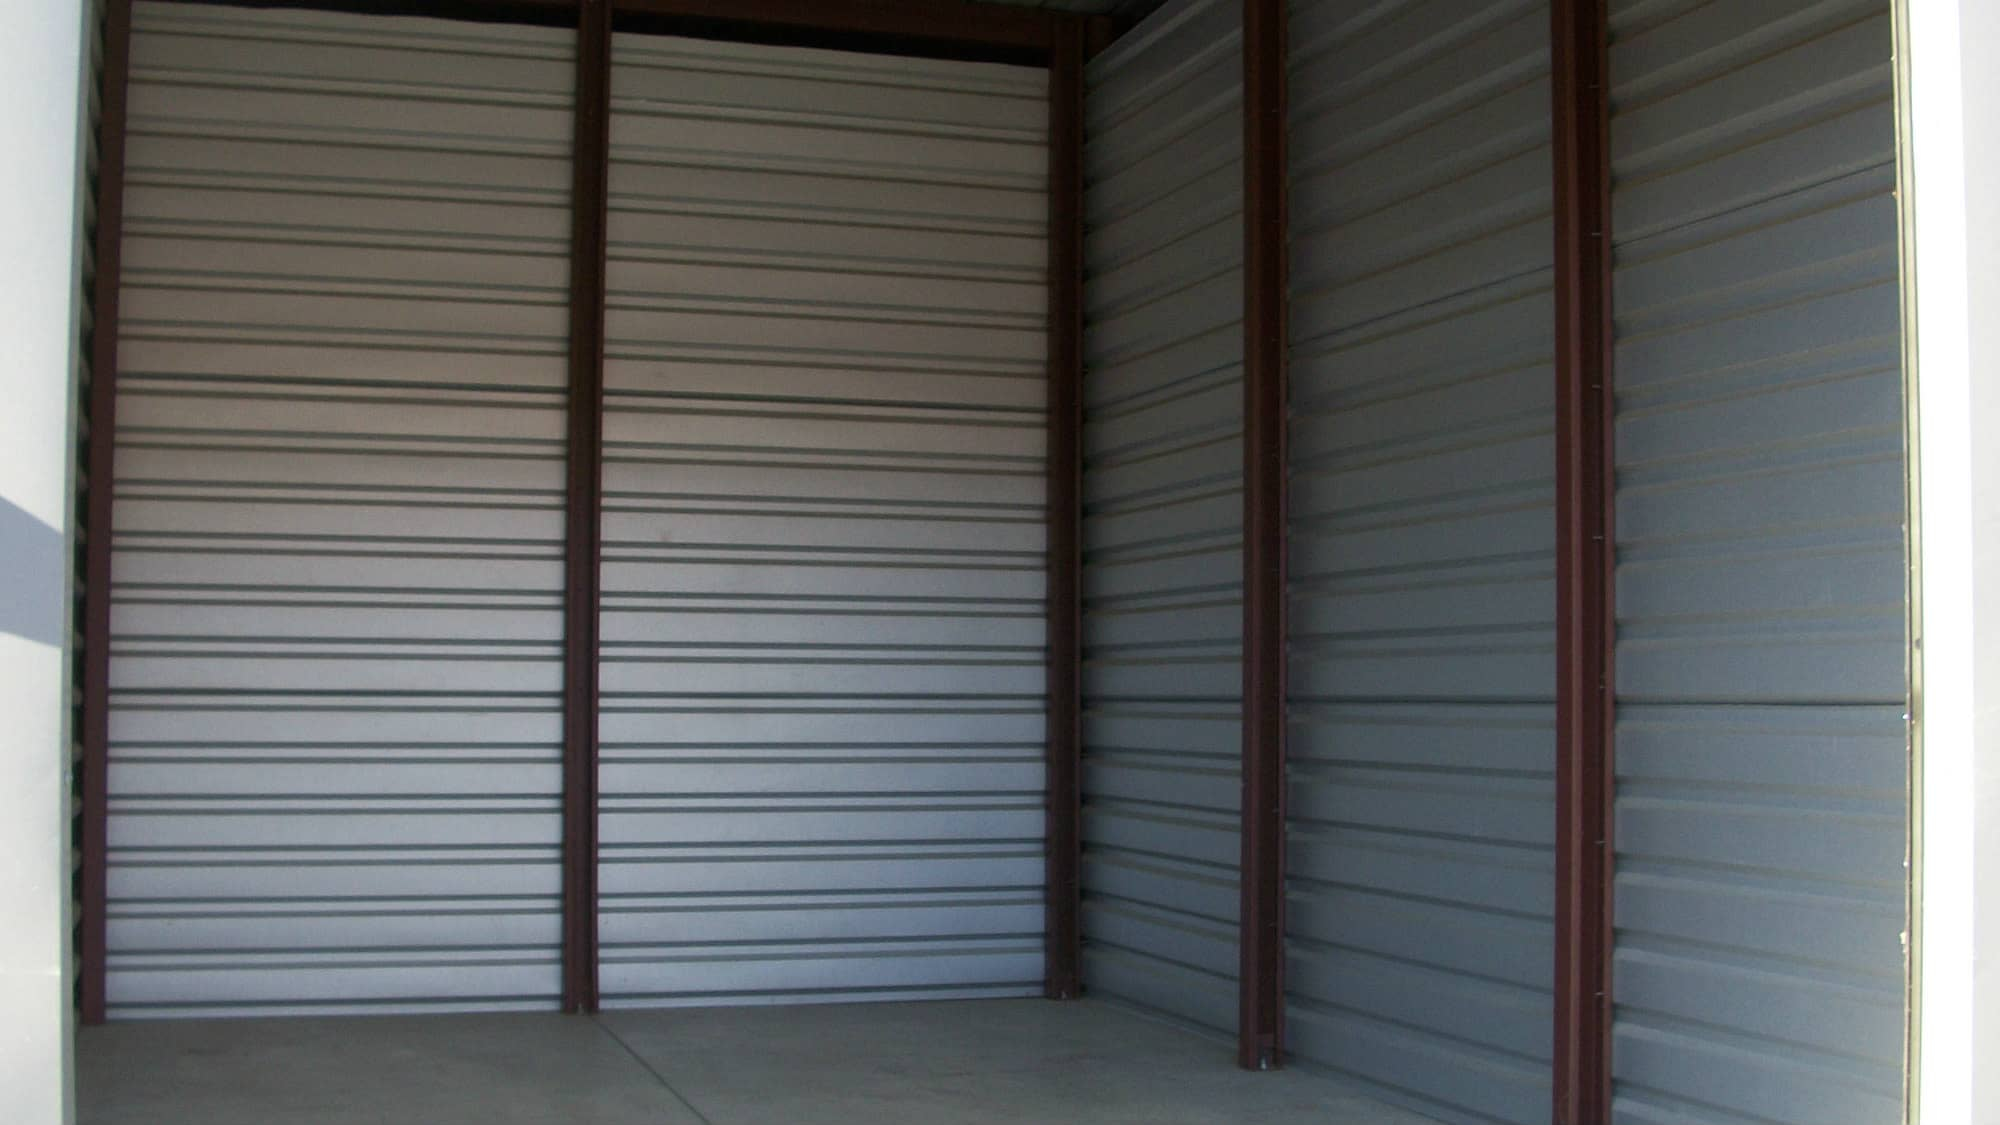 Open unit at Freestate Self Storage in Laurel, Maryland